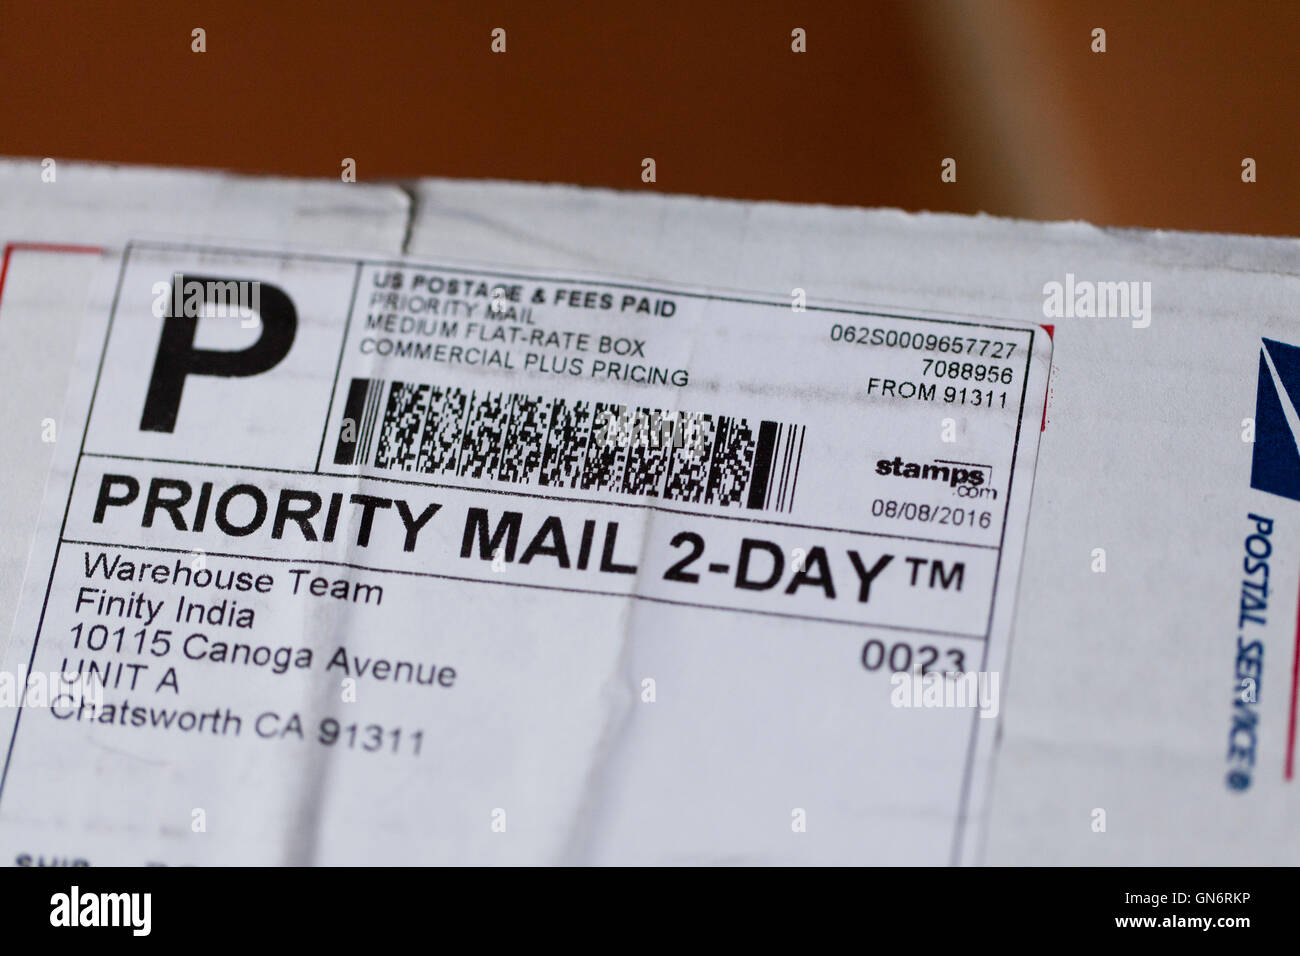 usps priority mail 2 day shipping label on package priority mail